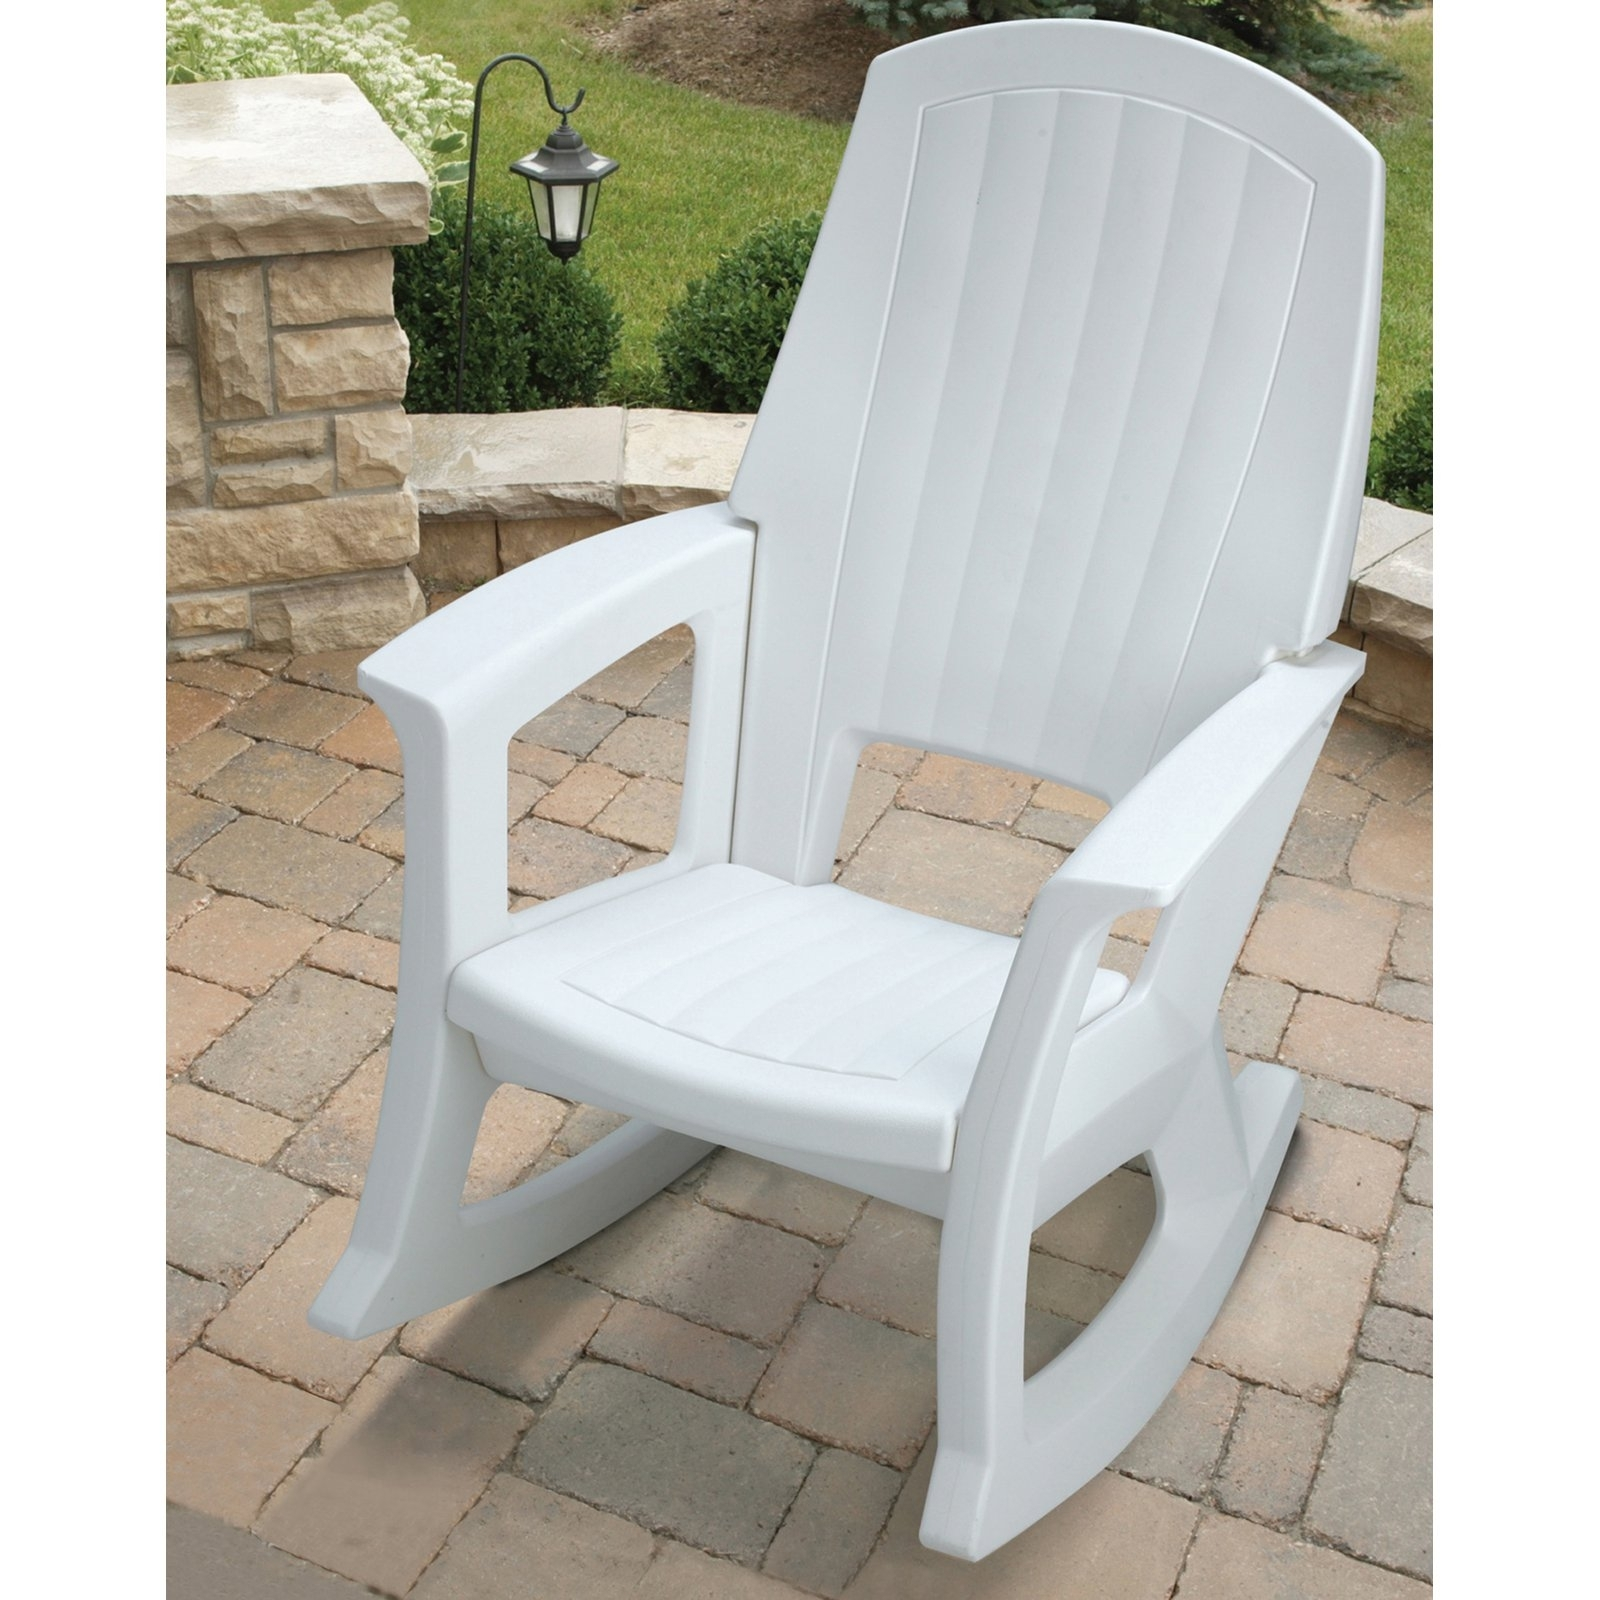 Semco Recycled Plastic Rocking Chair – Walmart Intended For Outdoor Patio Rocking Chairs (View 12 of 15)